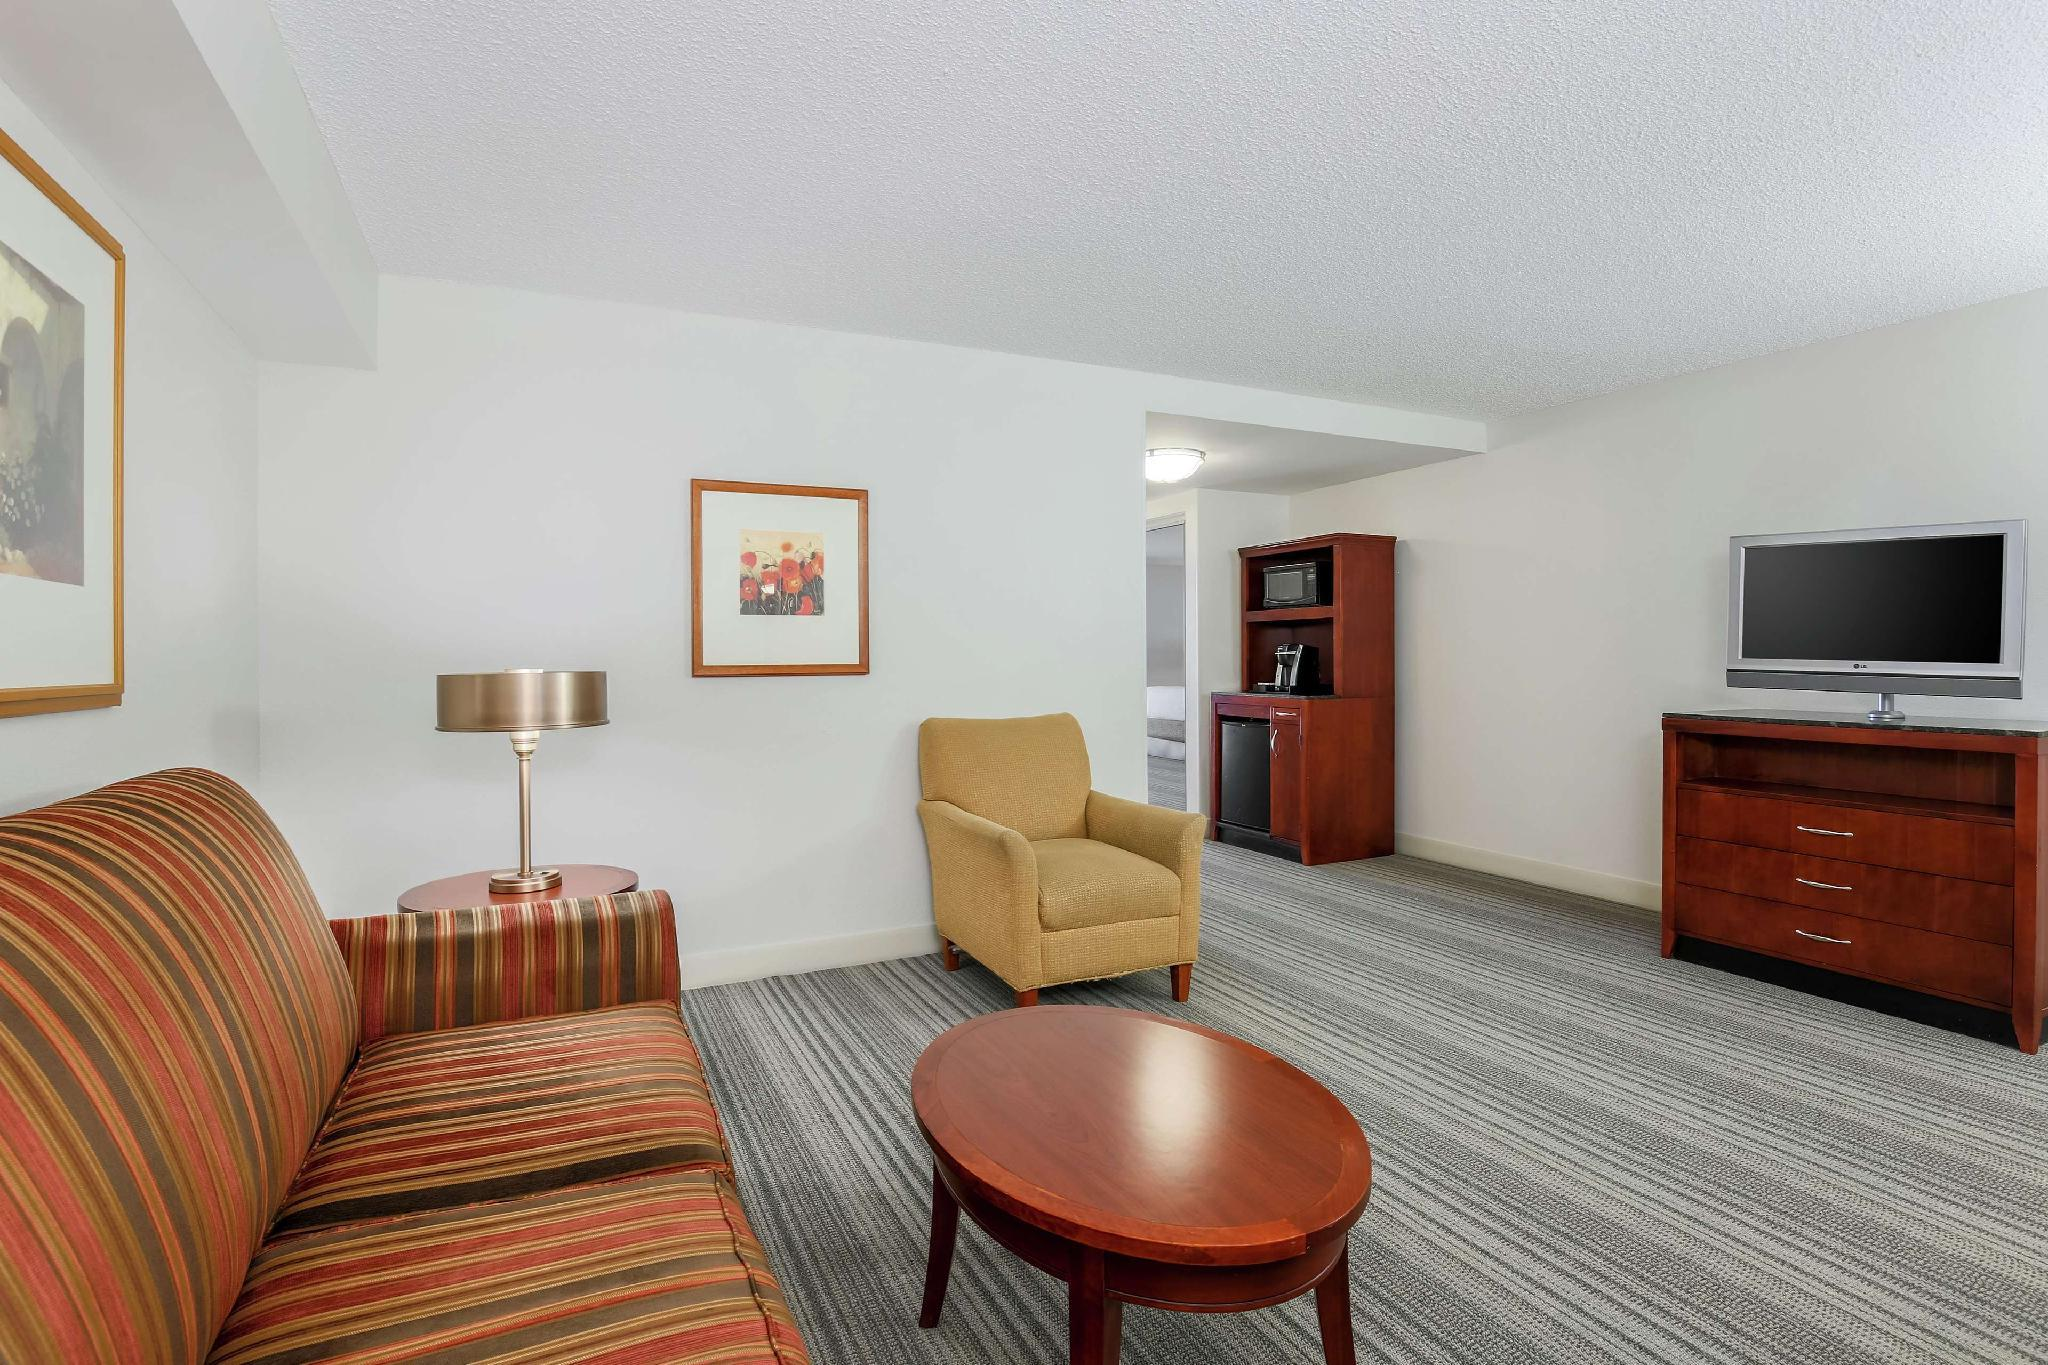 Hilton Garden Inn Roanoke Rapids Roanoke Rapids Nc 2020